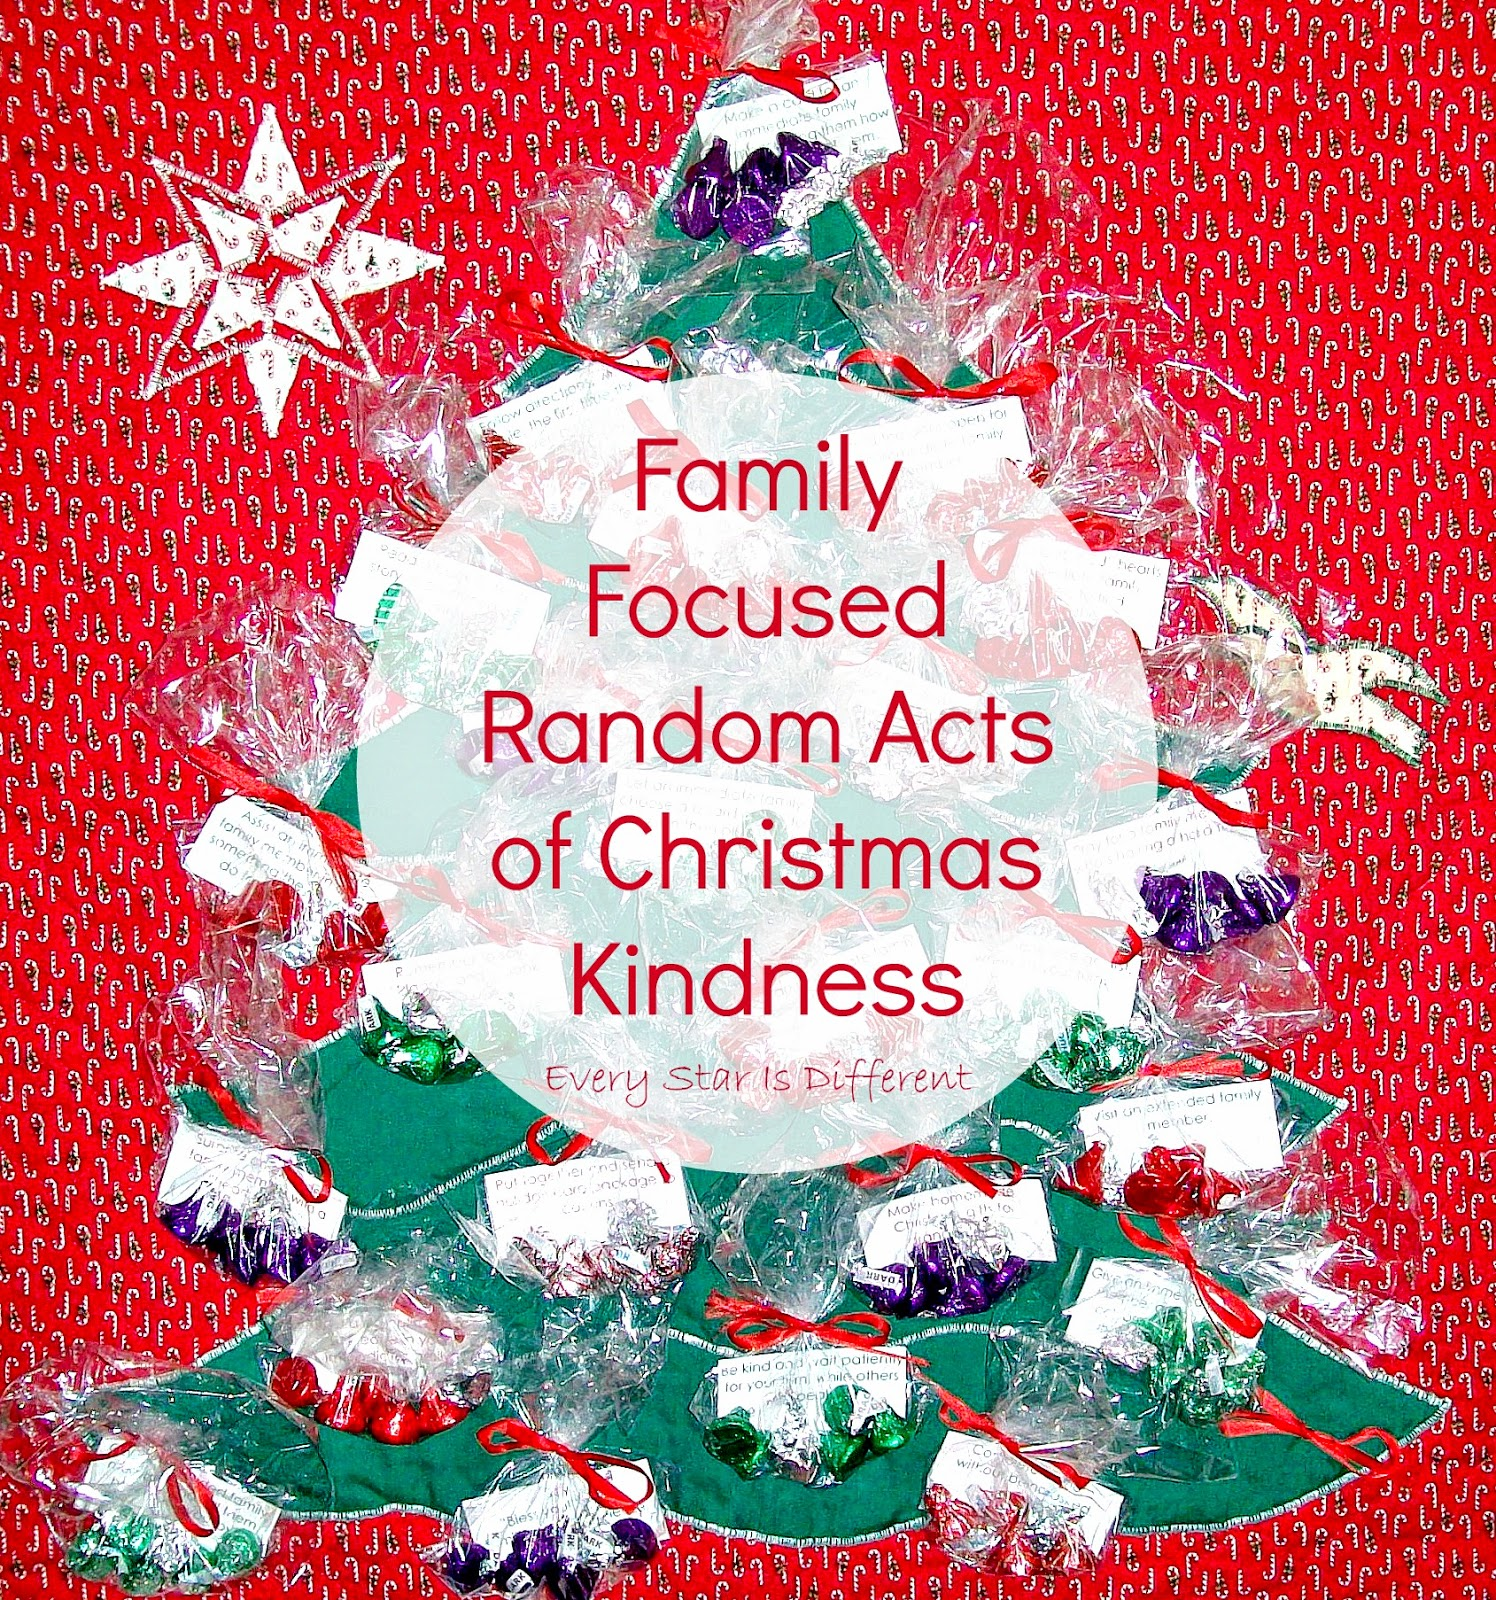 Every Star Is Different Family Focused Random Acts Of Christmas Kindness